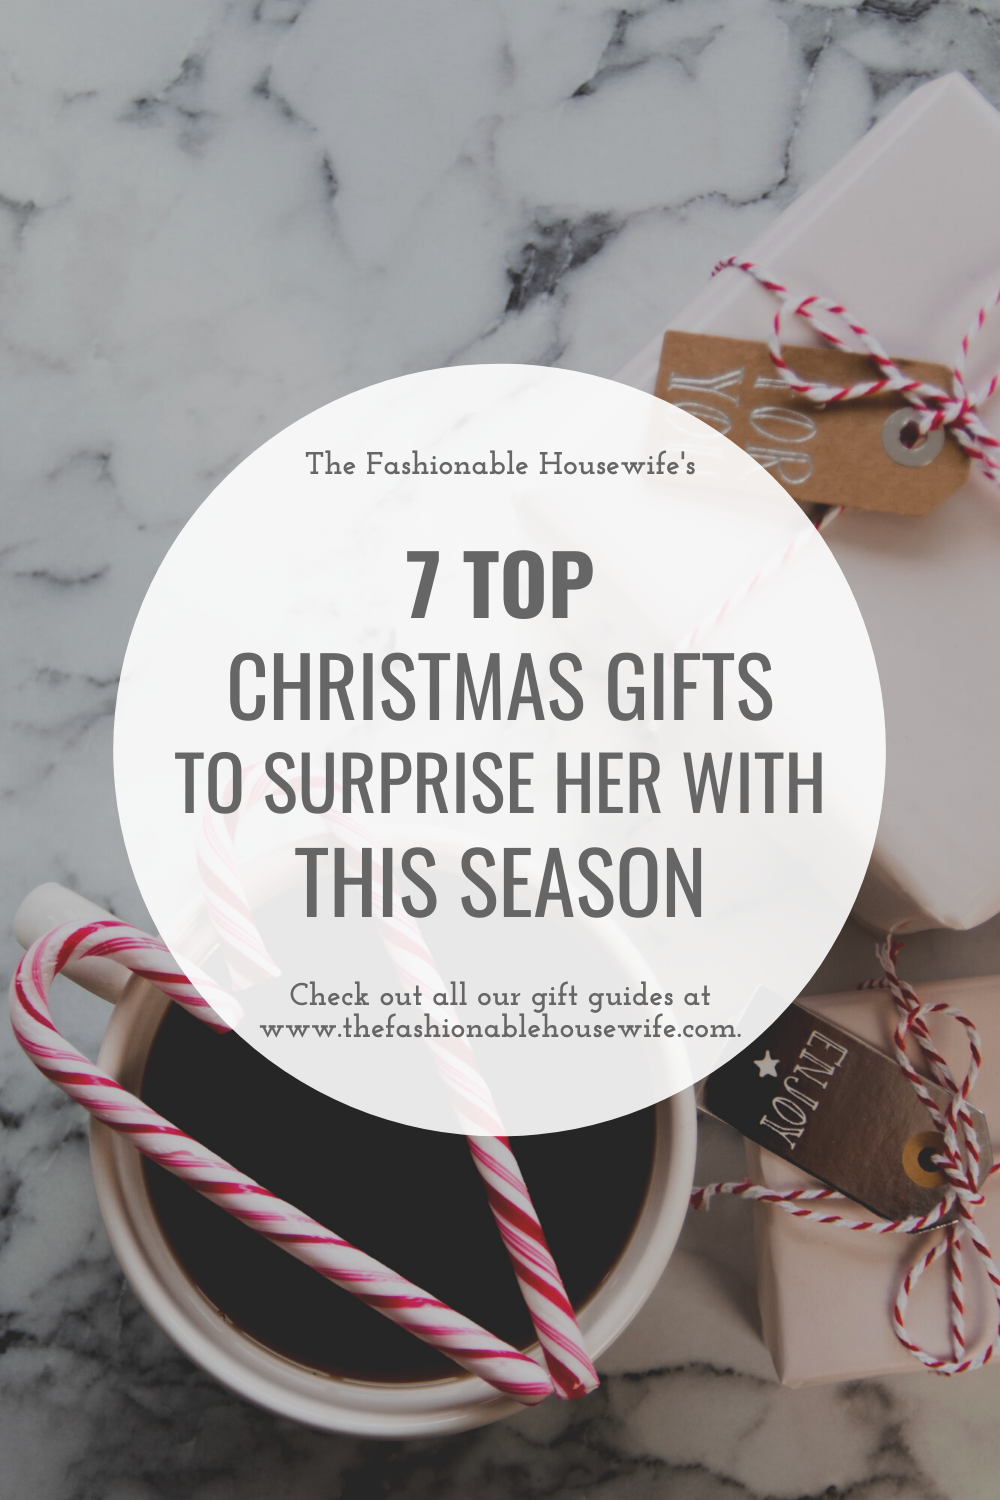 7 Top Wife Christmas Gifts To Surprise Her With This Season The Fashionable Housewife